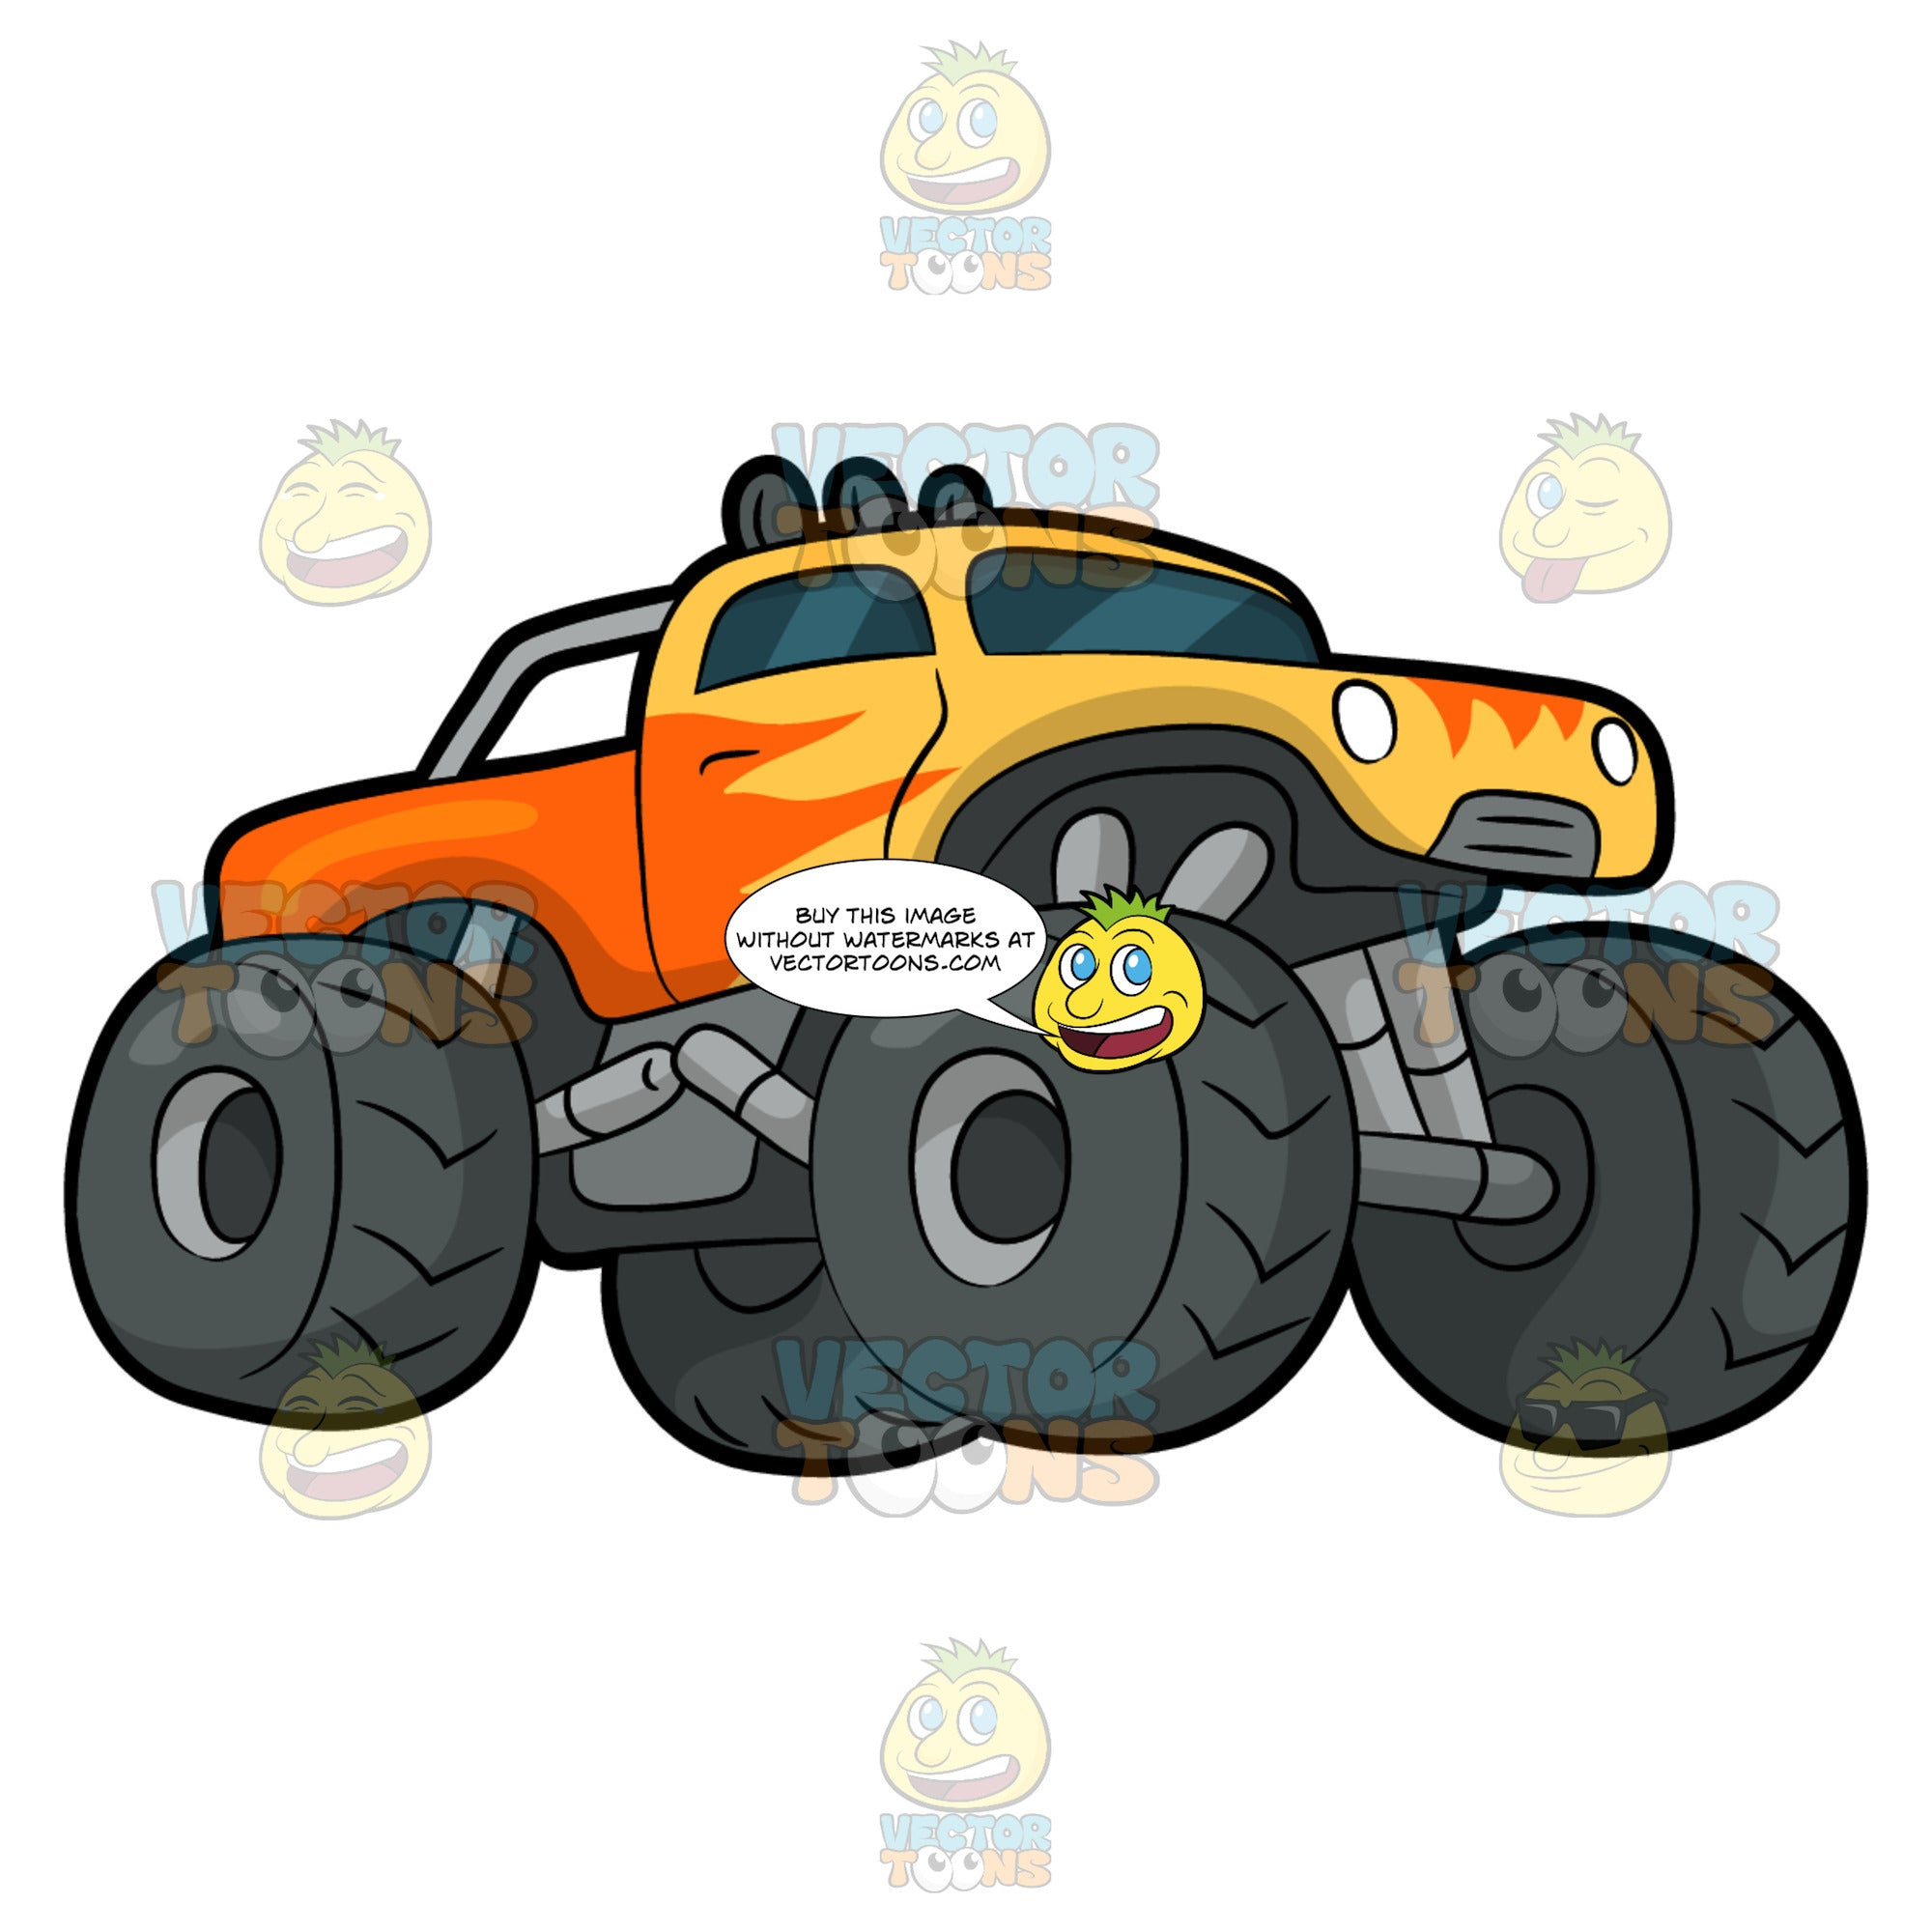 A Hot Rod Monster Truck. A monster truck with four huge dark gray tires, with a yellow and orange hot rod body paint, as well as overhead lamps